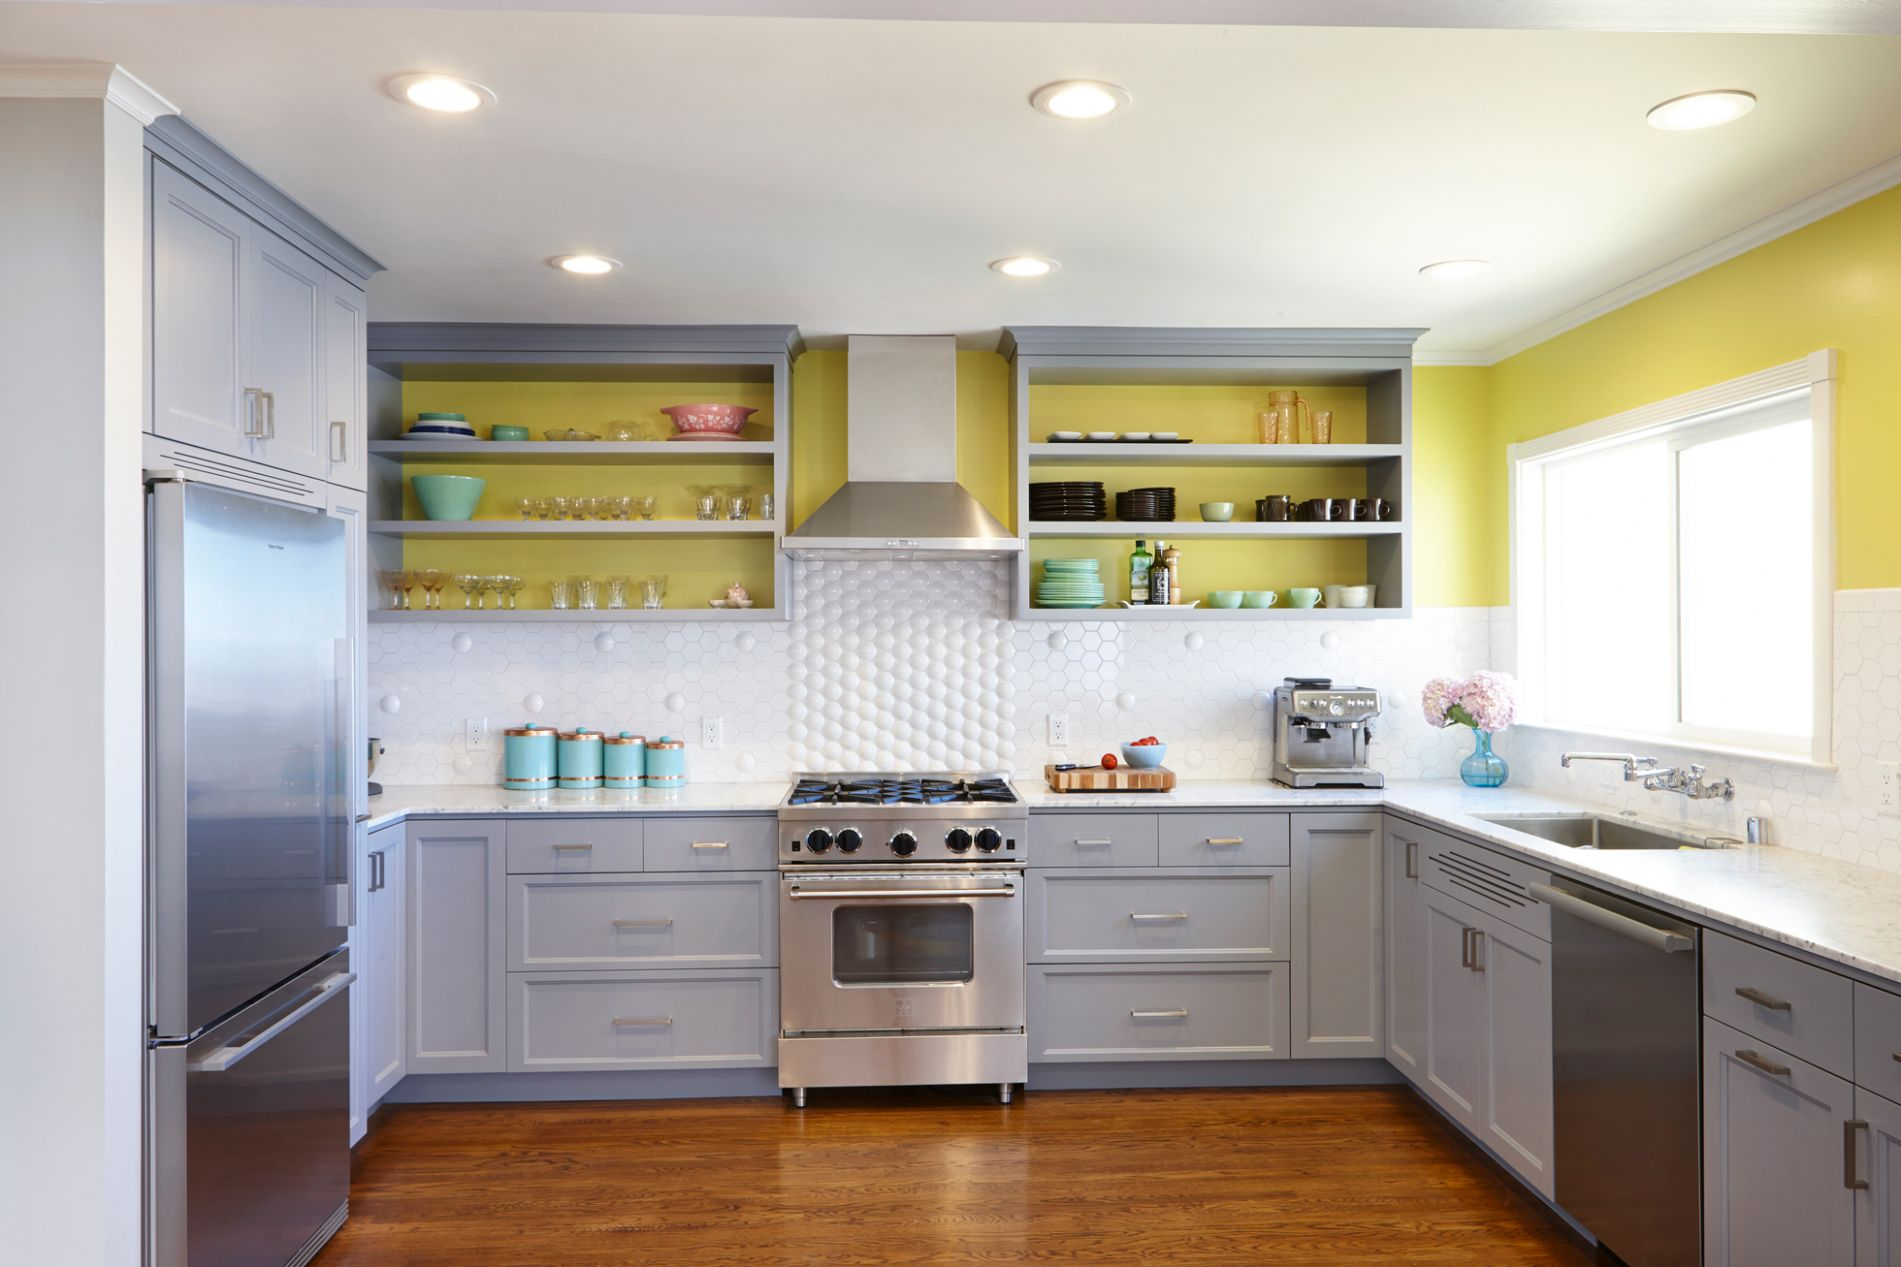 Interior Paint Color Ideas | Painting Inside Kitchen Cabinets ..